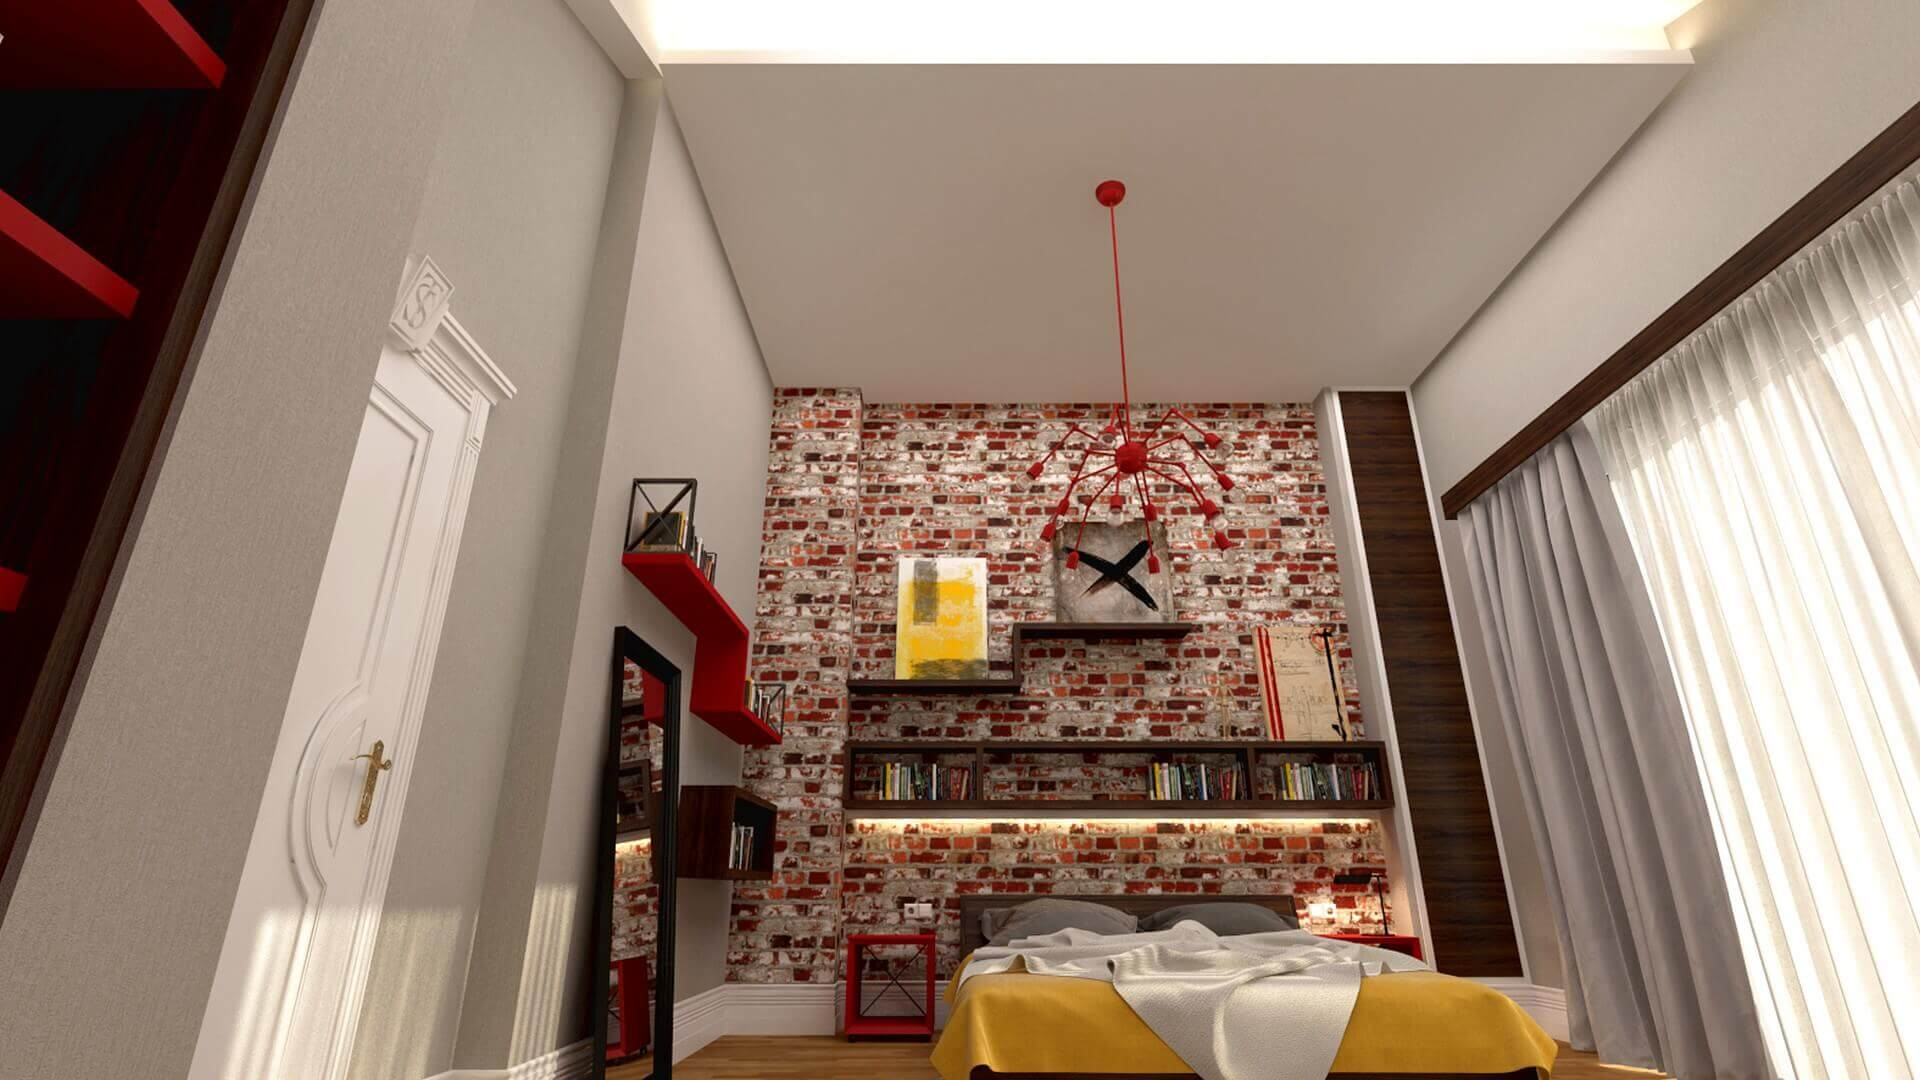 Ankorman Evleri 2887 Private Project Residential